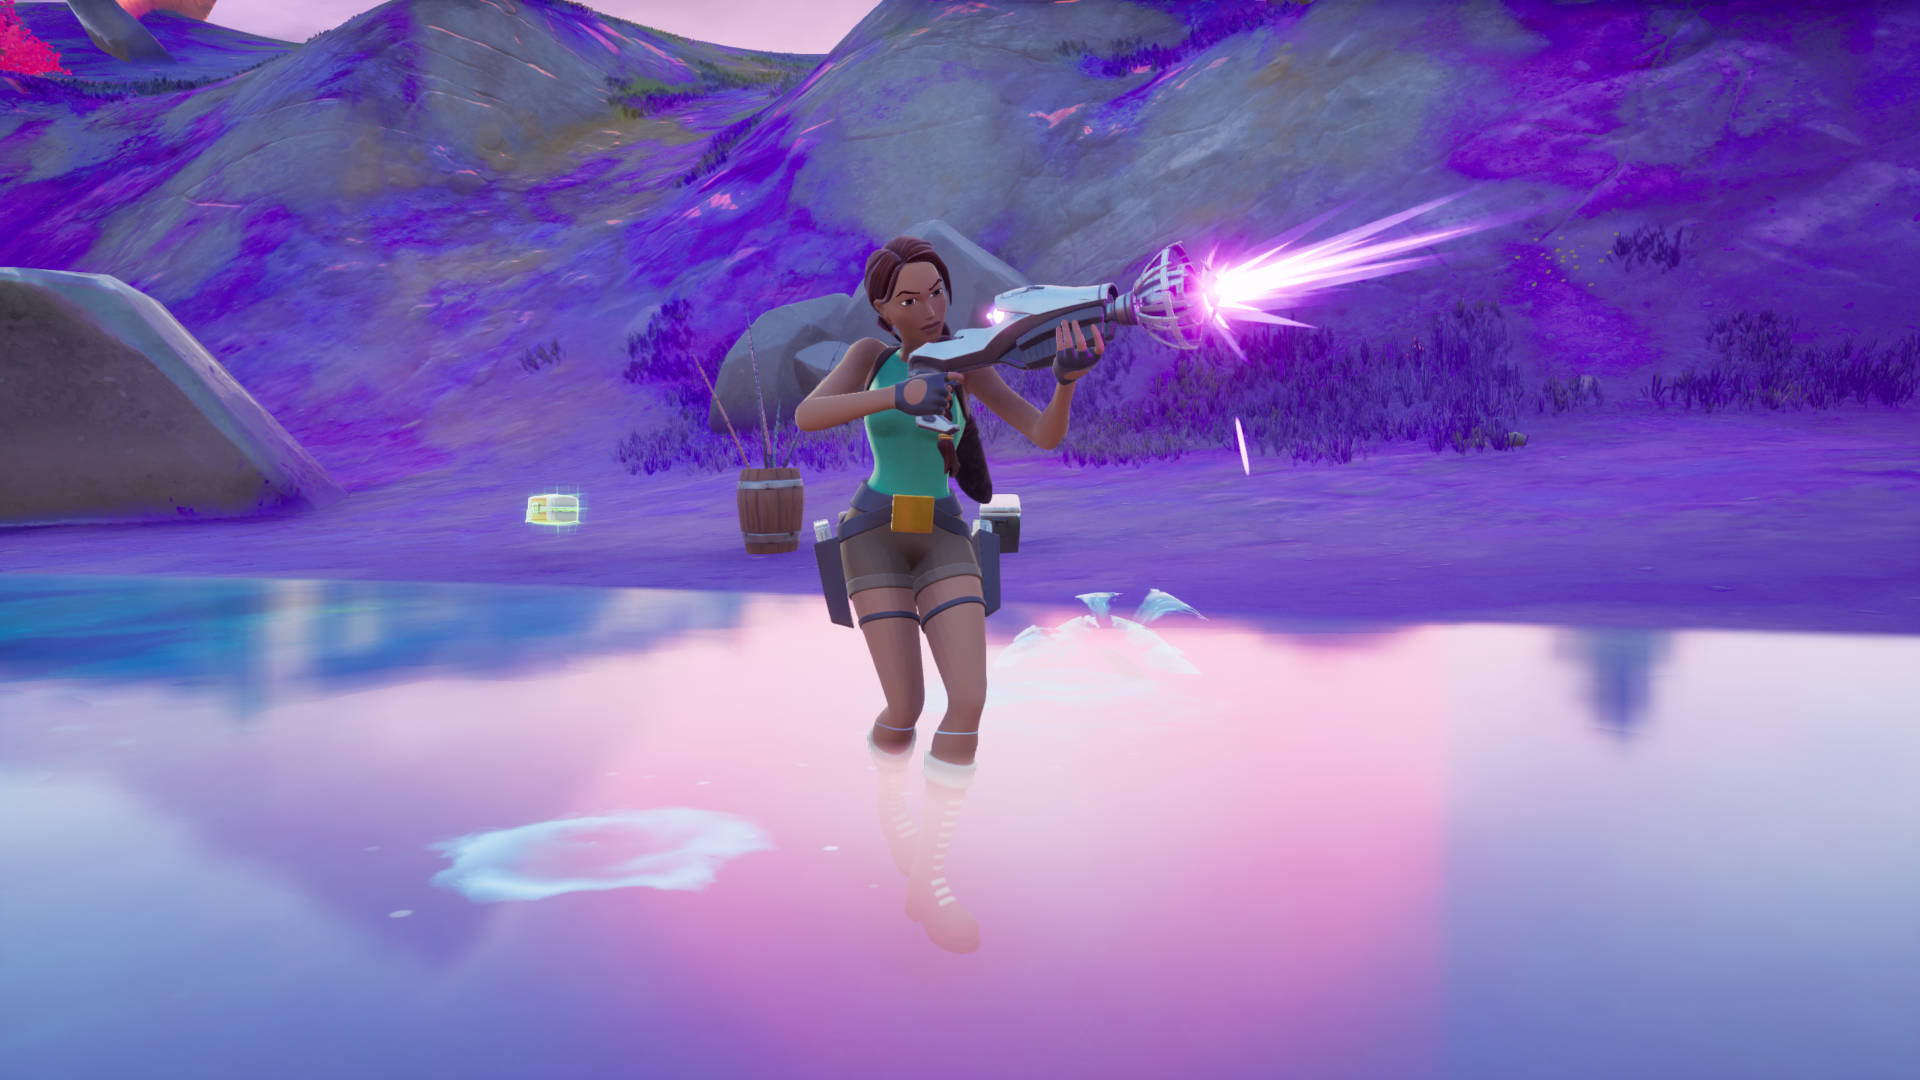 Fortnite aliens: how to get alien weapons and fly UFOs